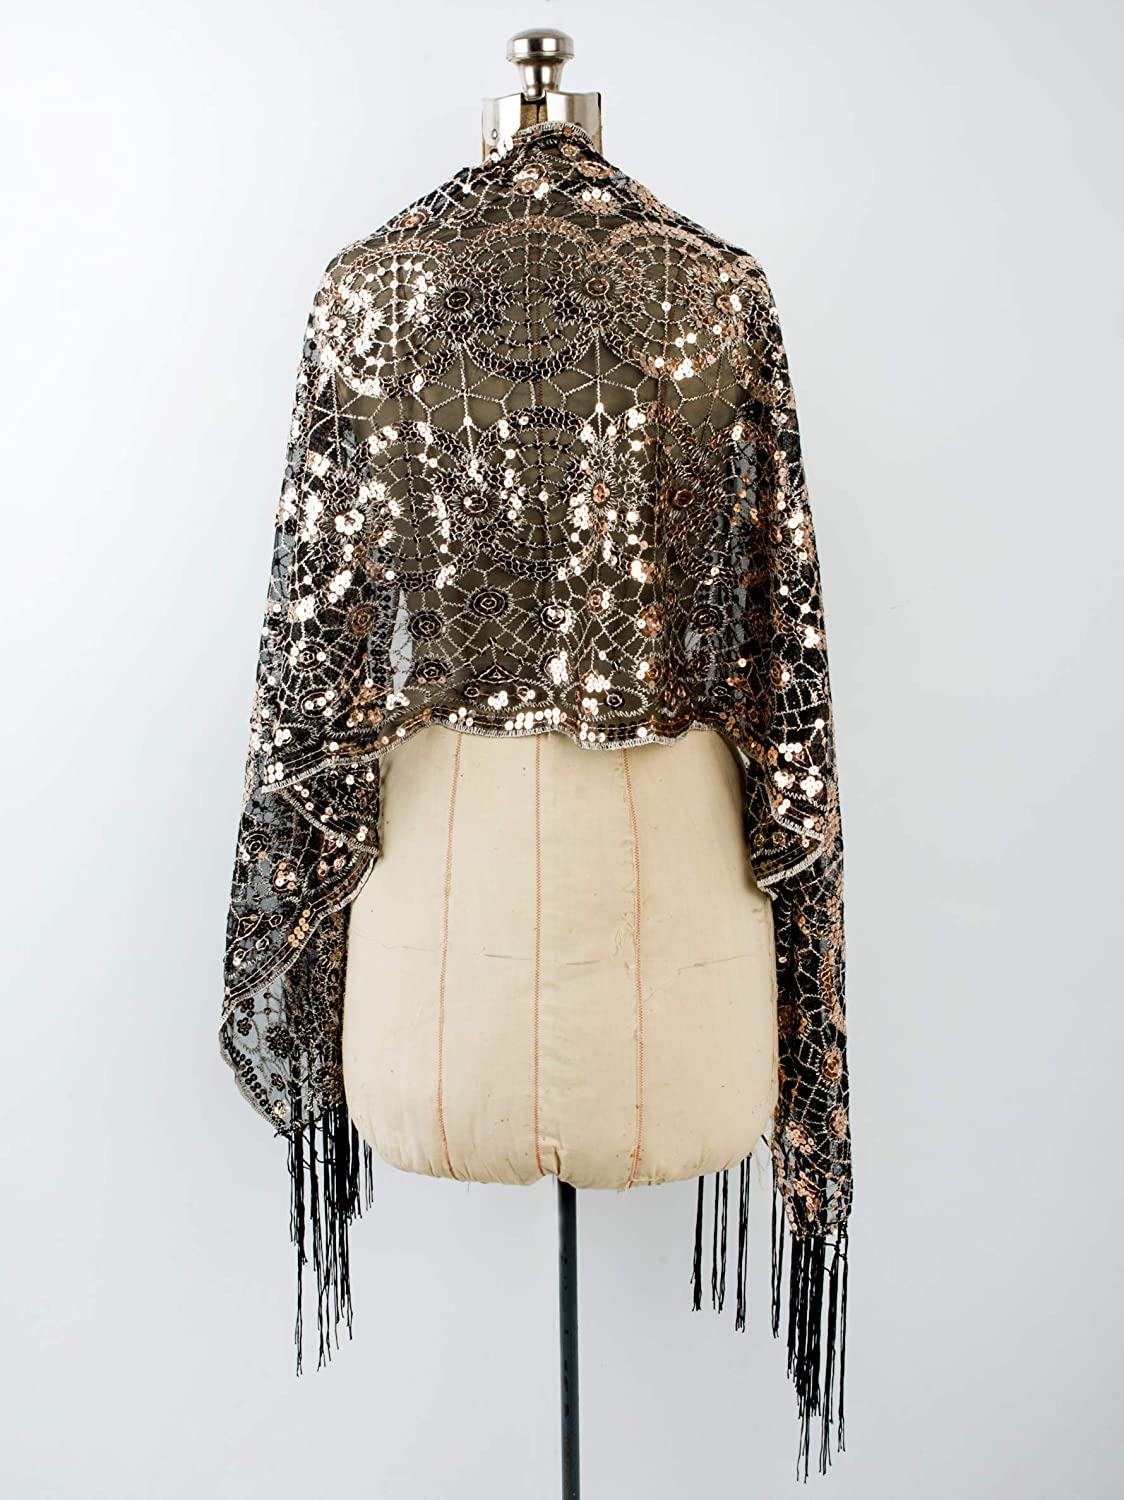 1900-1910s Clothing Bohomonde Vera Vintage Inspired Sequin Shawl Evening Wrap Embroidered Sequin Fringe Shawl or Scarf $18.95 AT vintagedancer.com